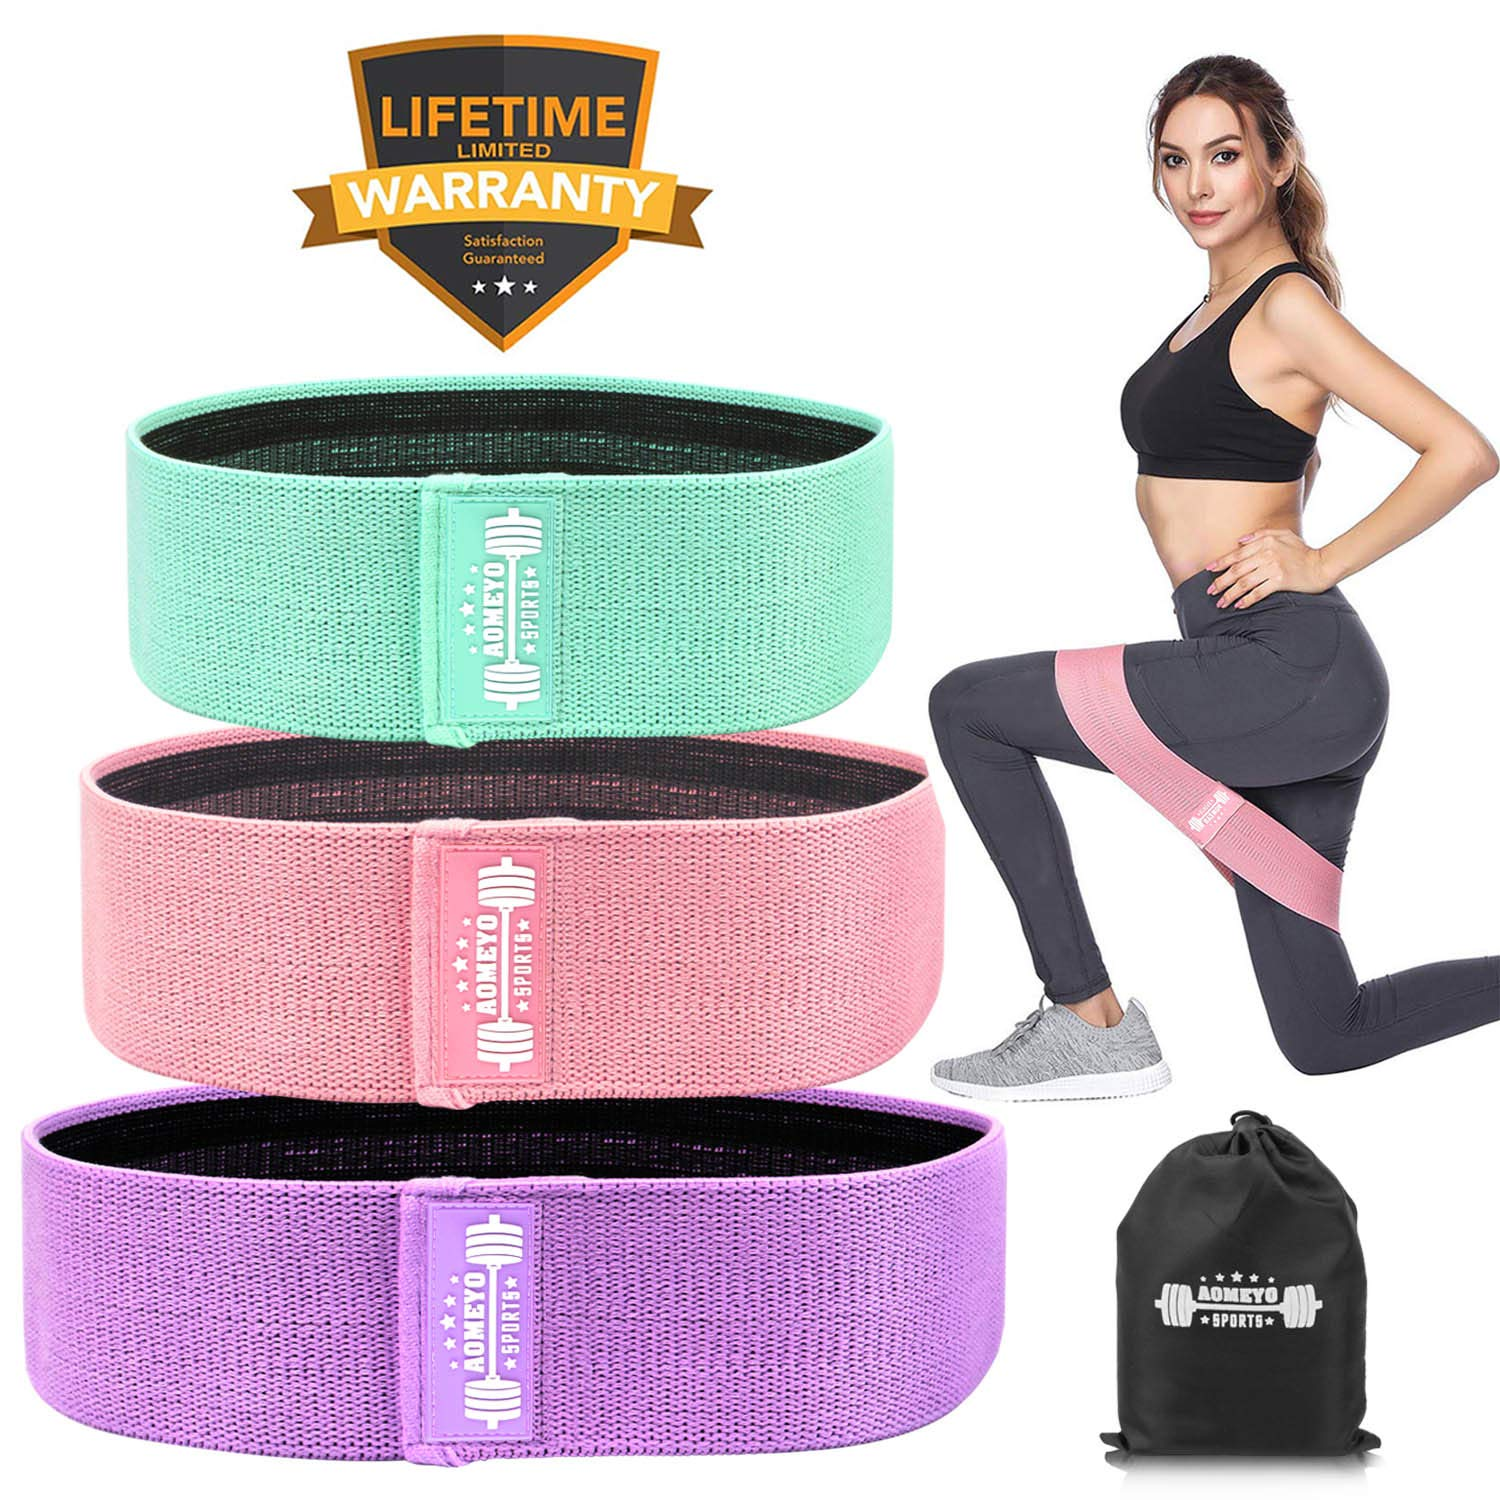 Resistance Bands for Legs and Butt,Exercise Bands Booty Bands Loop Bands Hip Bands for Women and Men, Glute or Squat Workout Wide Stretching Gym Bands for Physical Therapy (Life-Time Warranty)